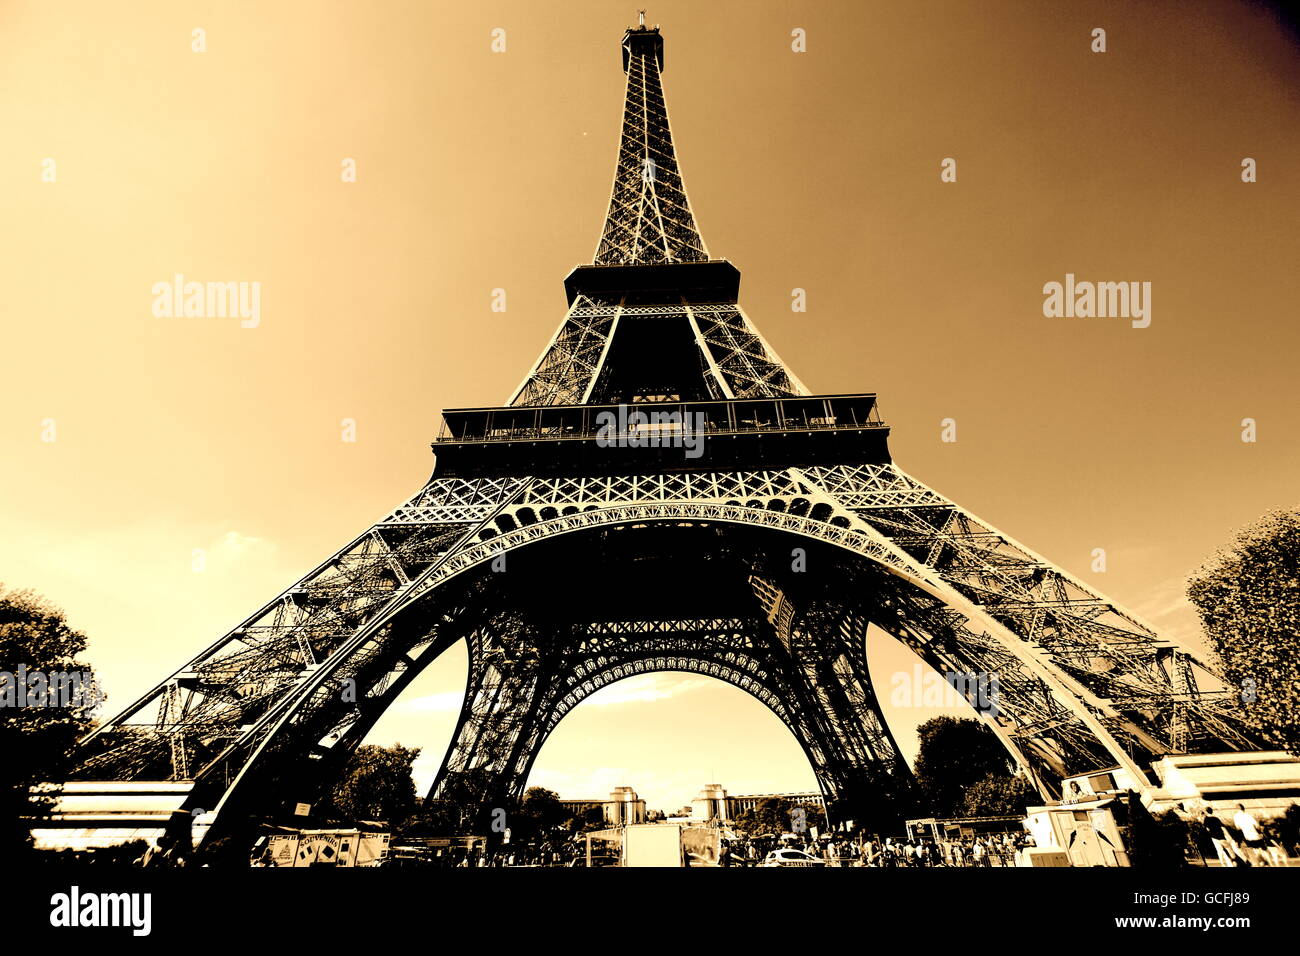 The Eiffel Tower sepia - Stock Image